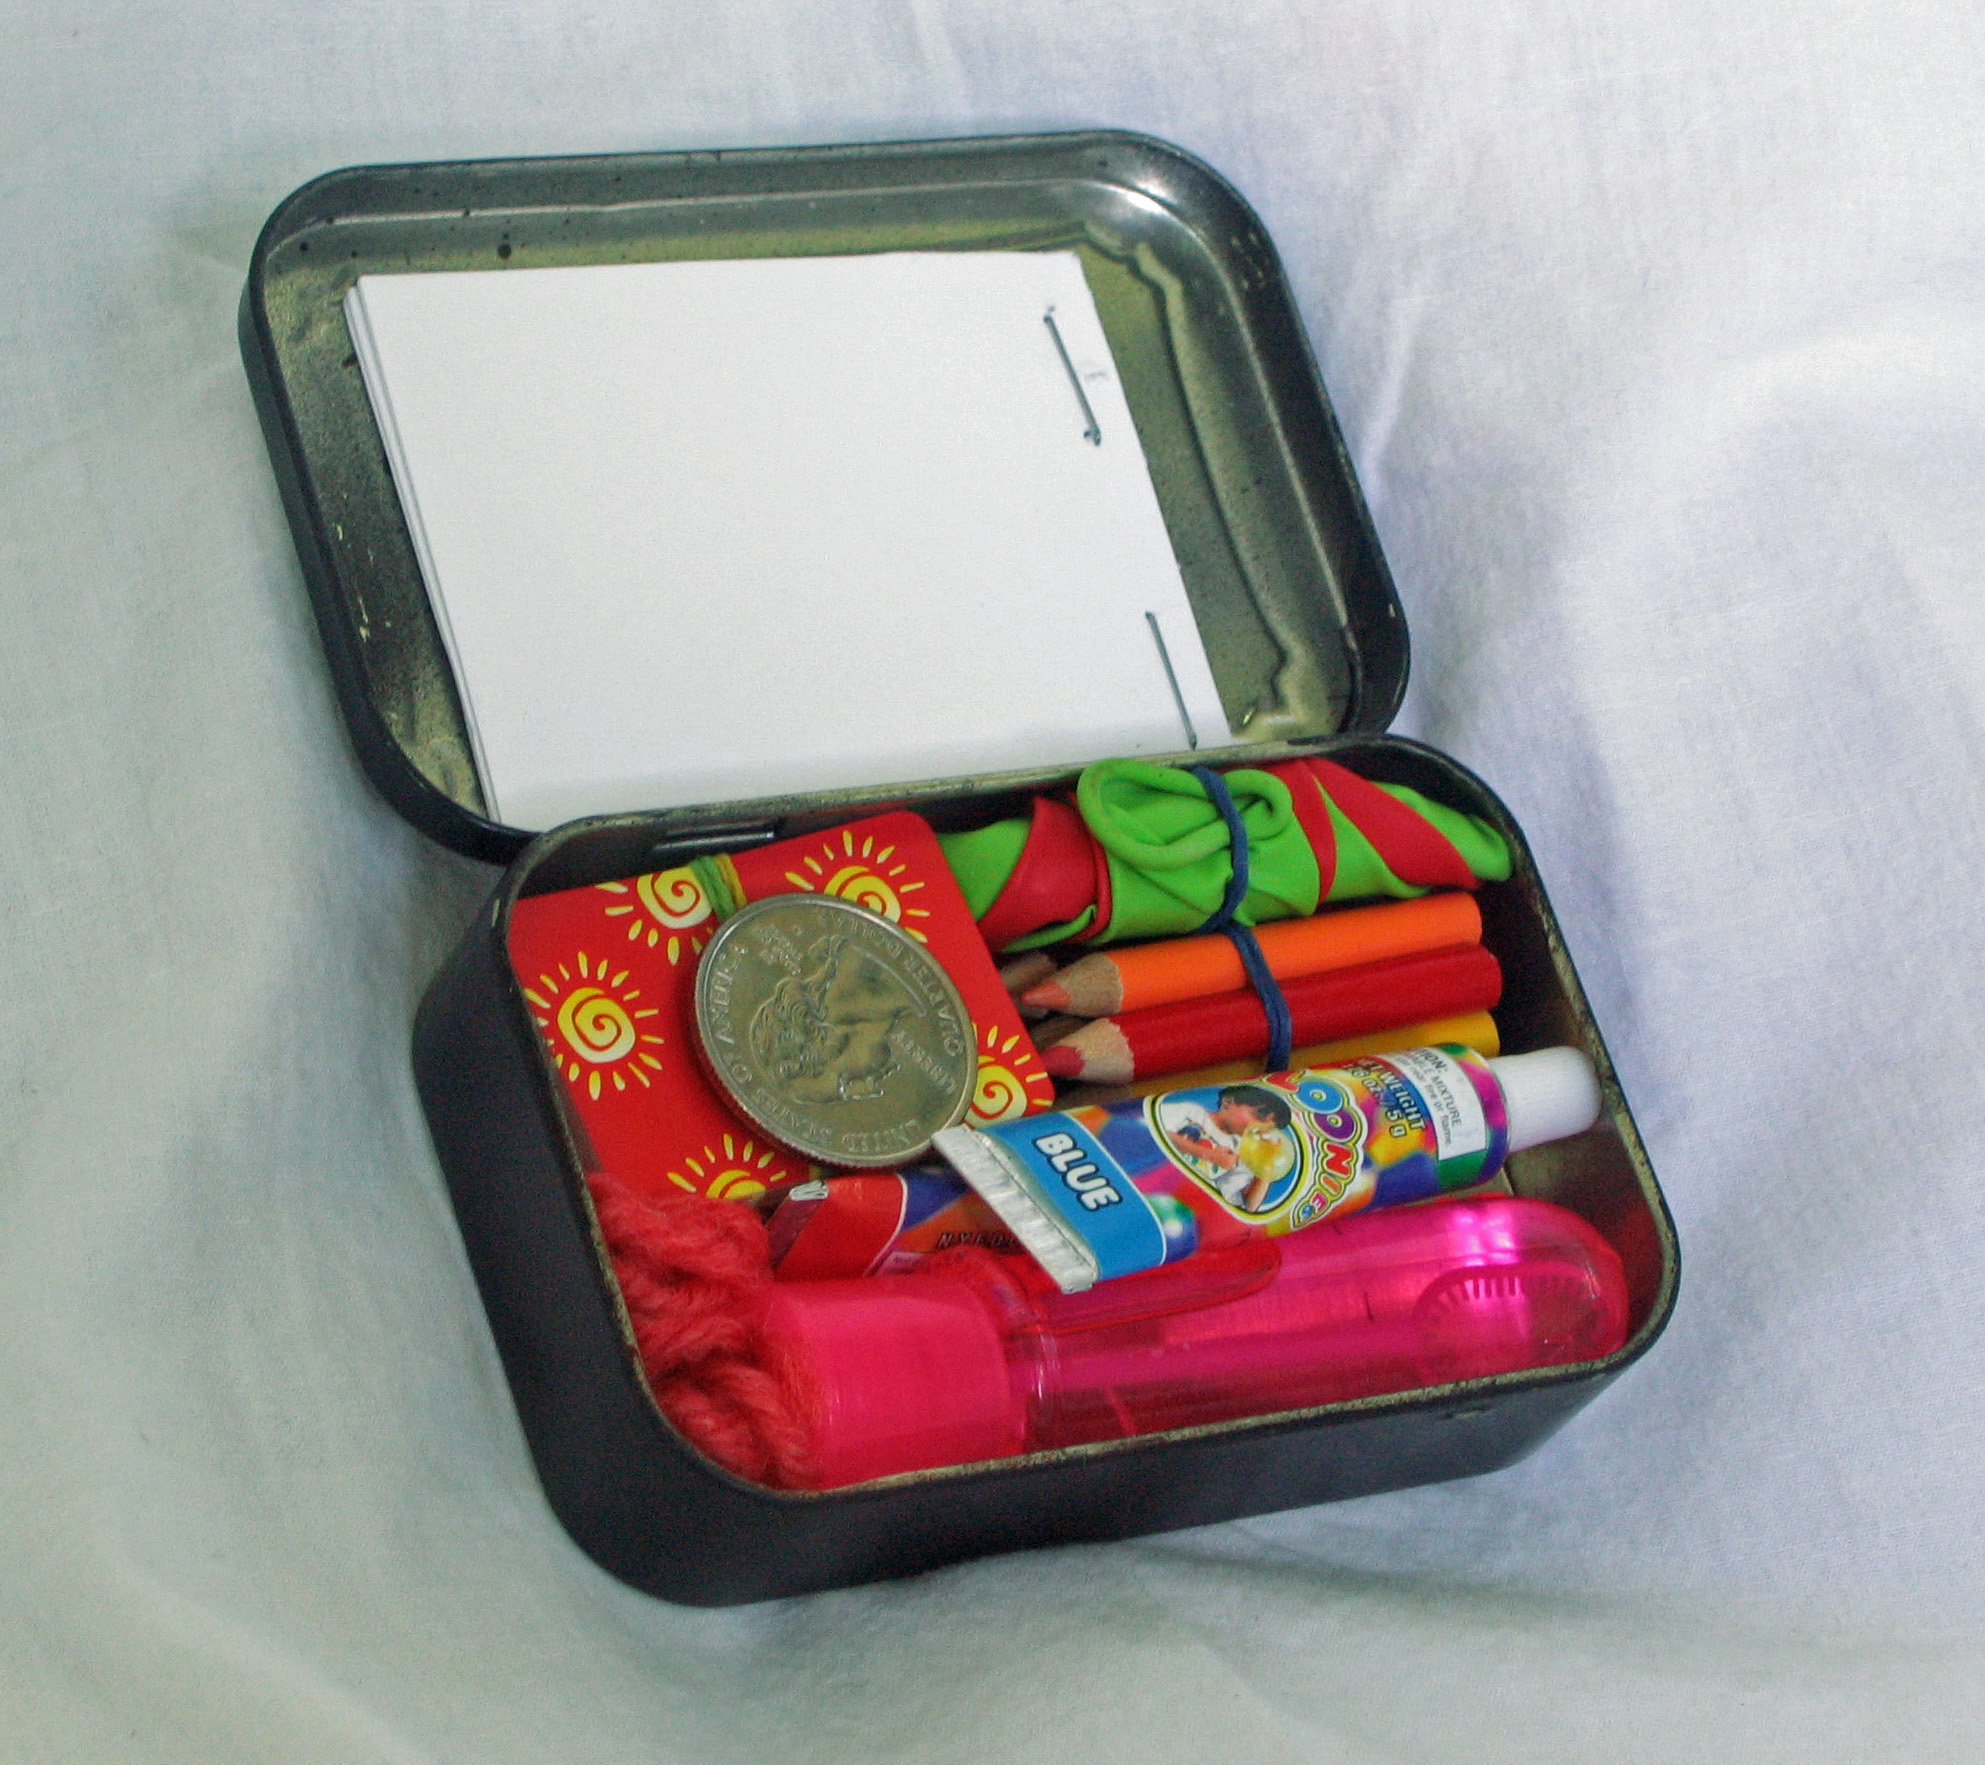 Anti-Boredom pocket kit